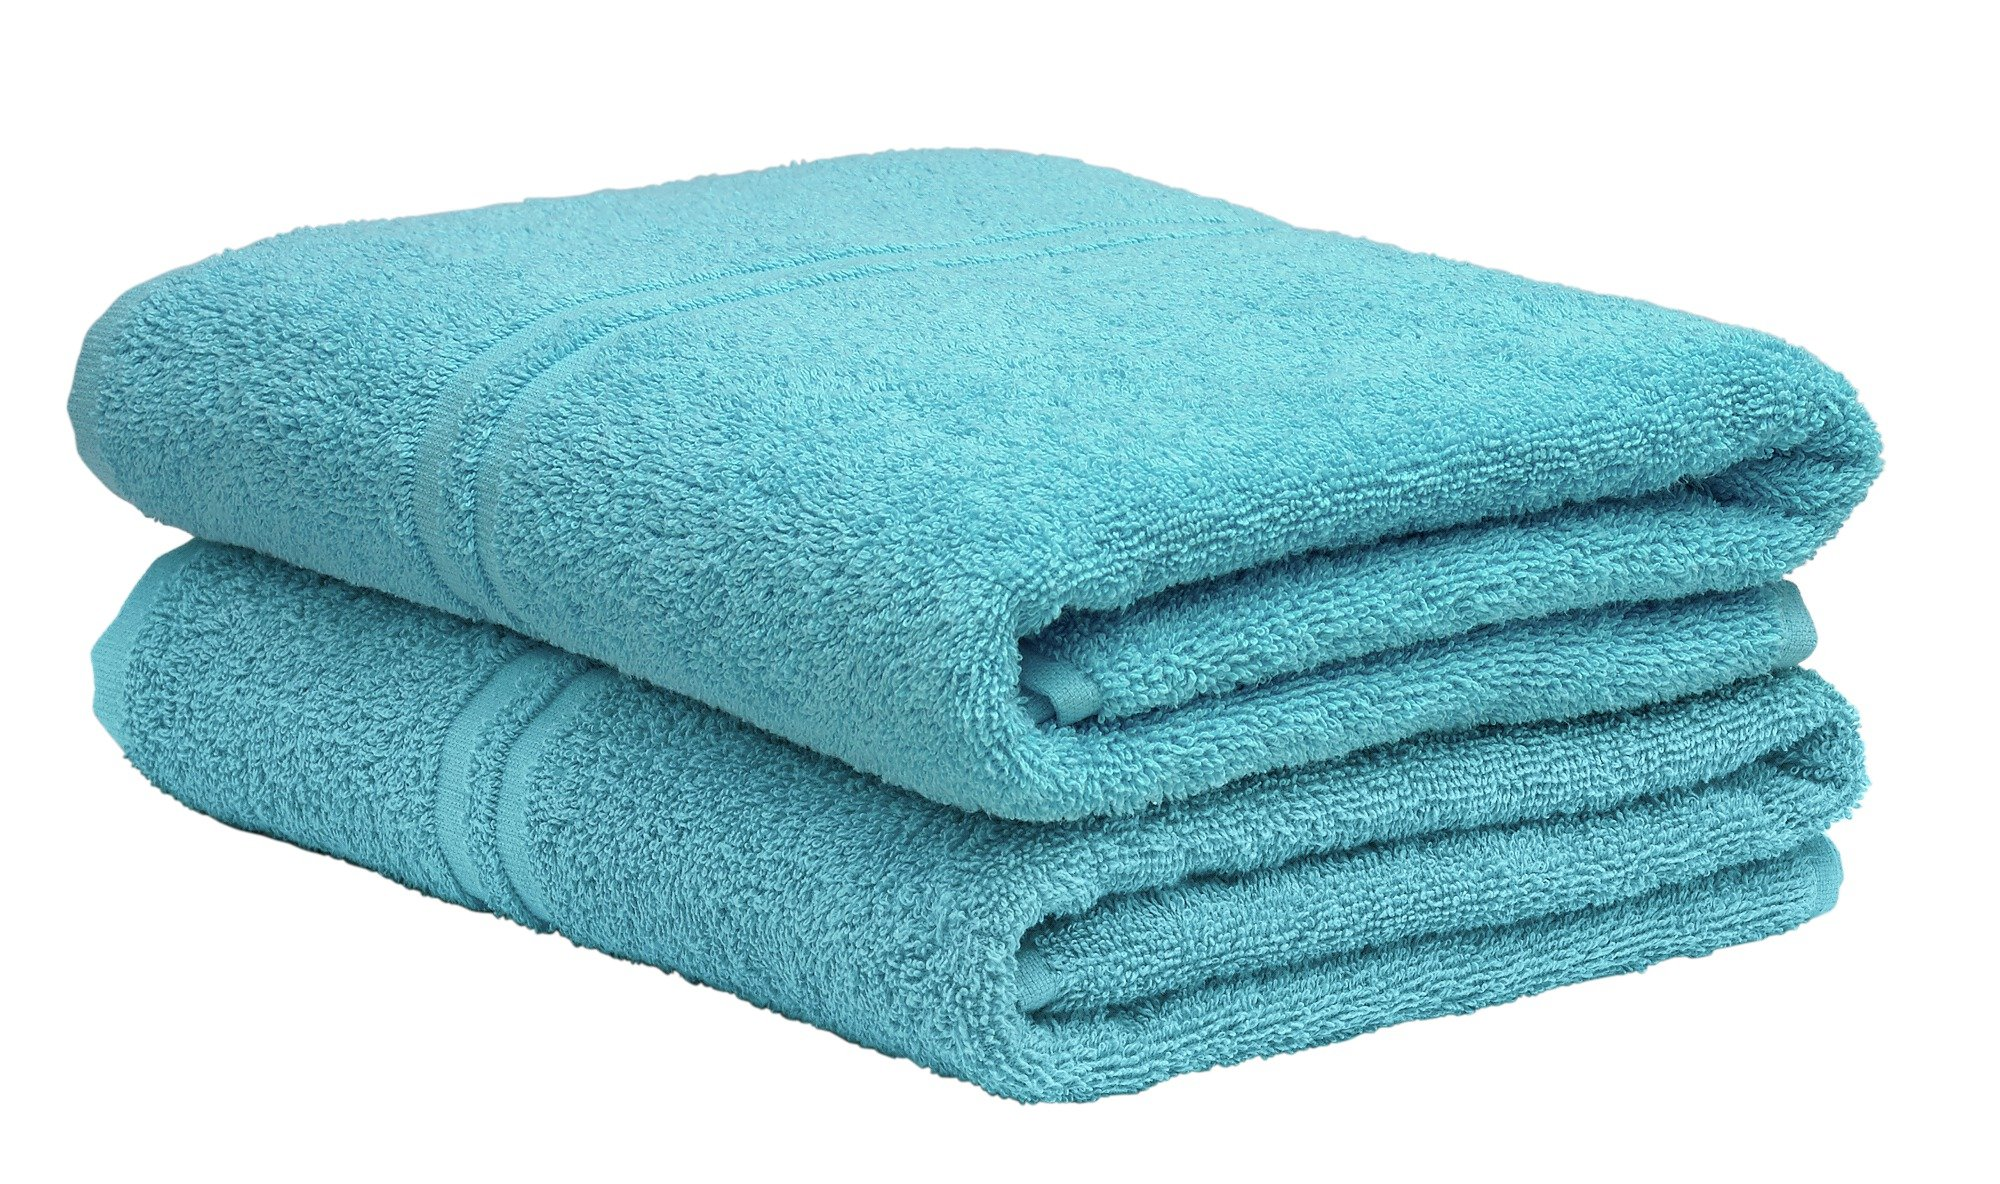 Argos Home Pair of Bath Towels - Crystal Blue